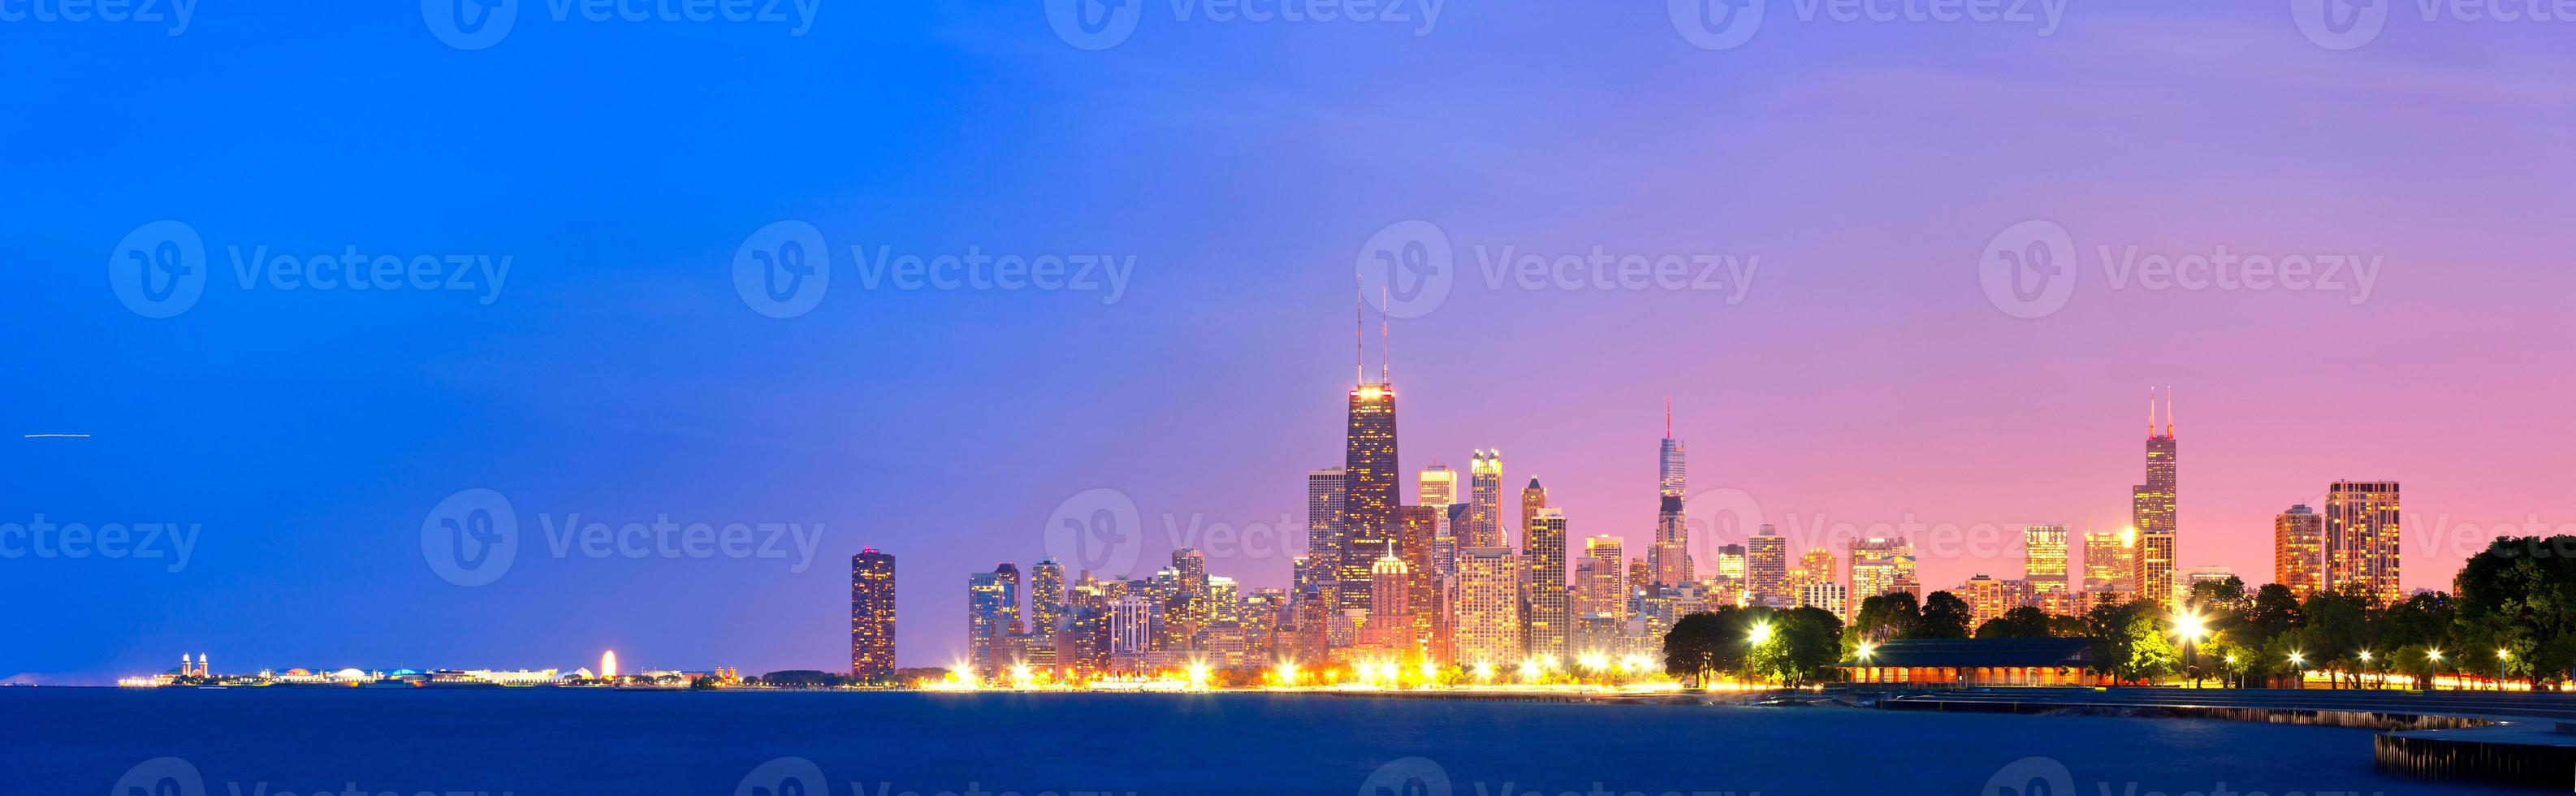 City of Chicago USA, colorful skyline panorama at sunset photo